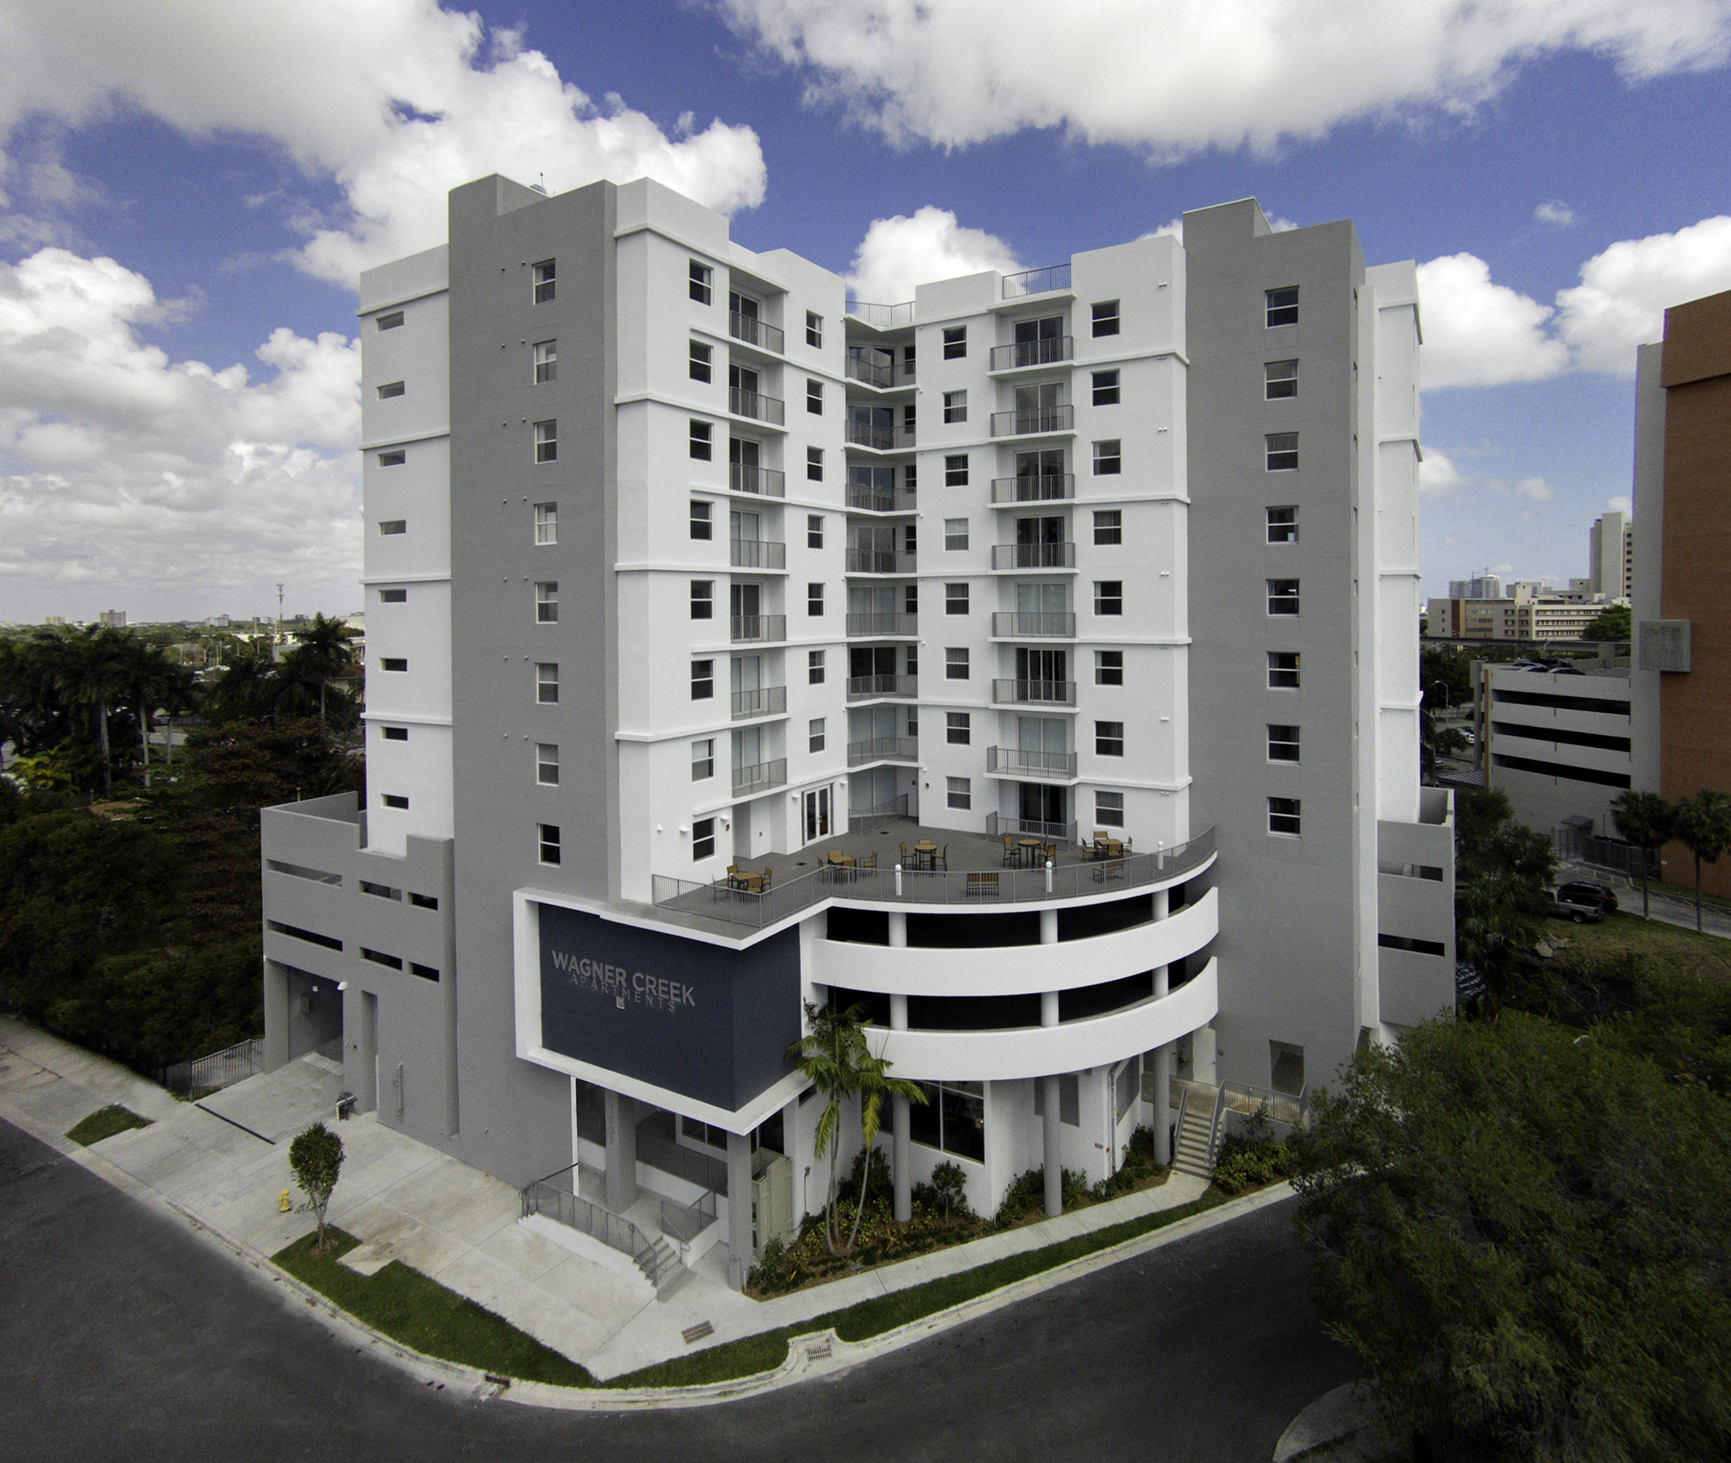 Miami Apartments: Miami's Growing Health District Gets Affordable Housing